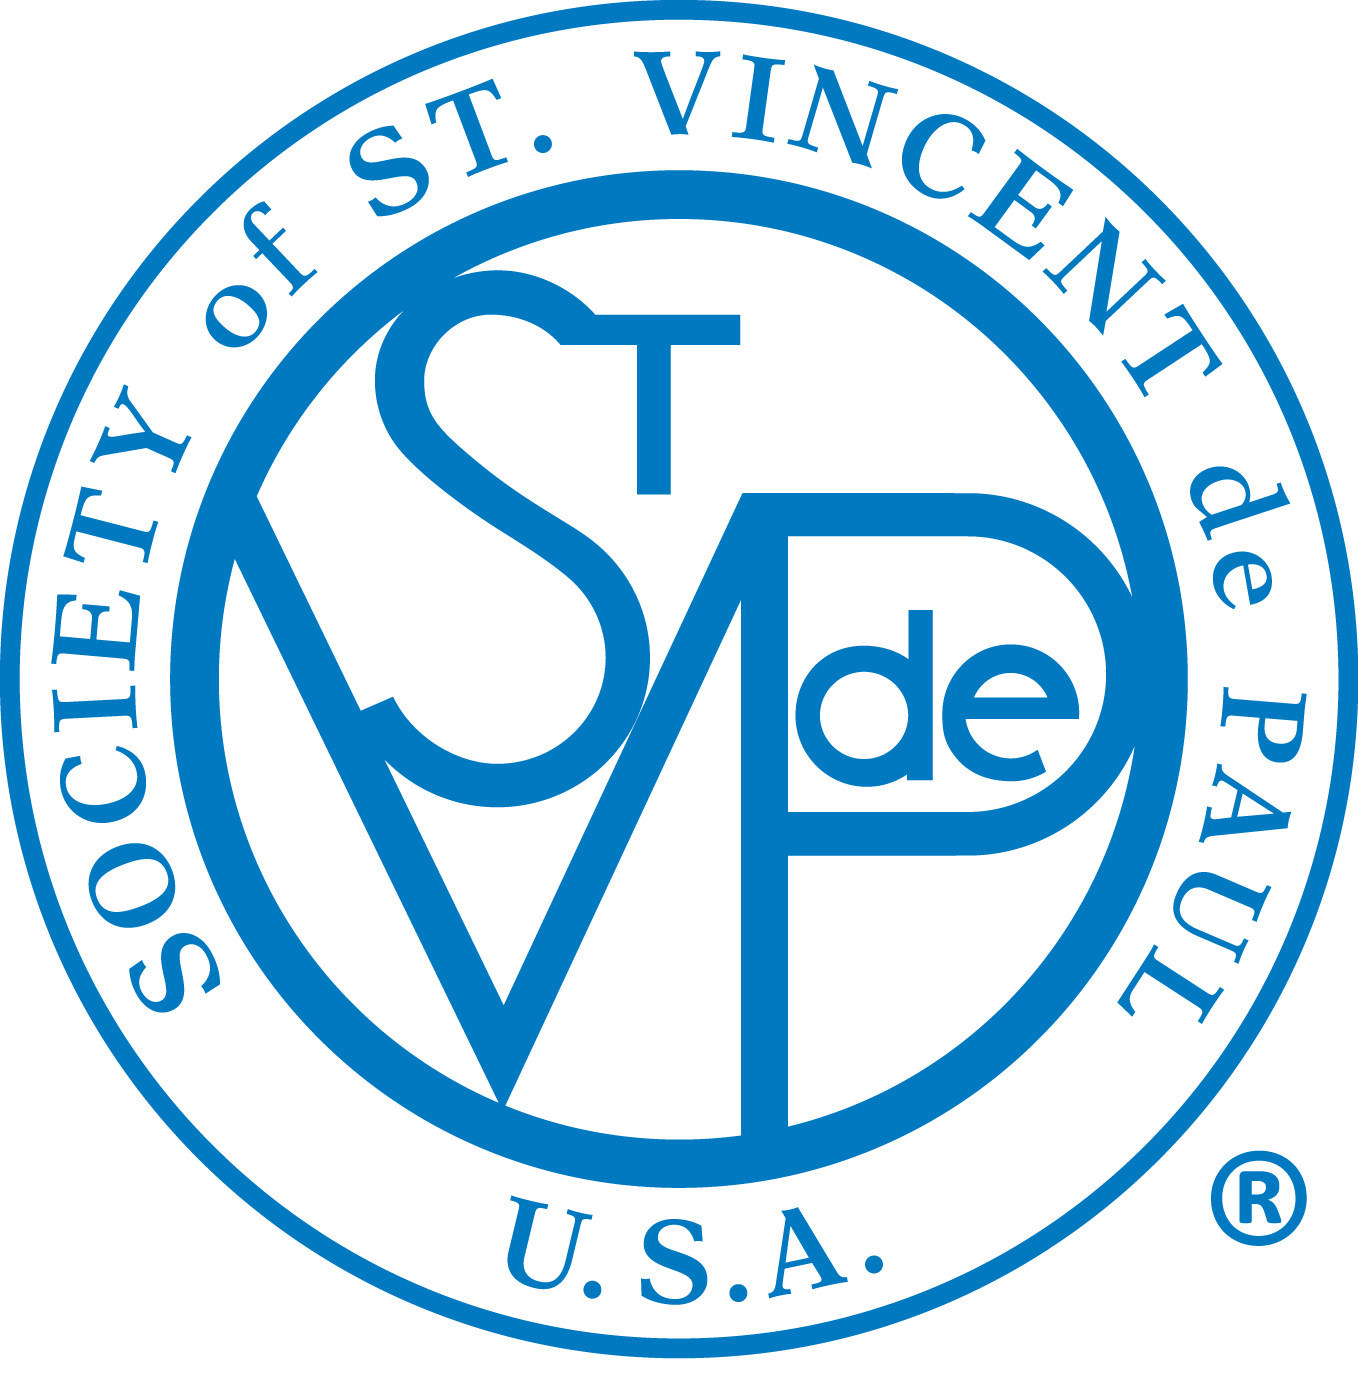 U.S. Society of St. Vincent de Paul